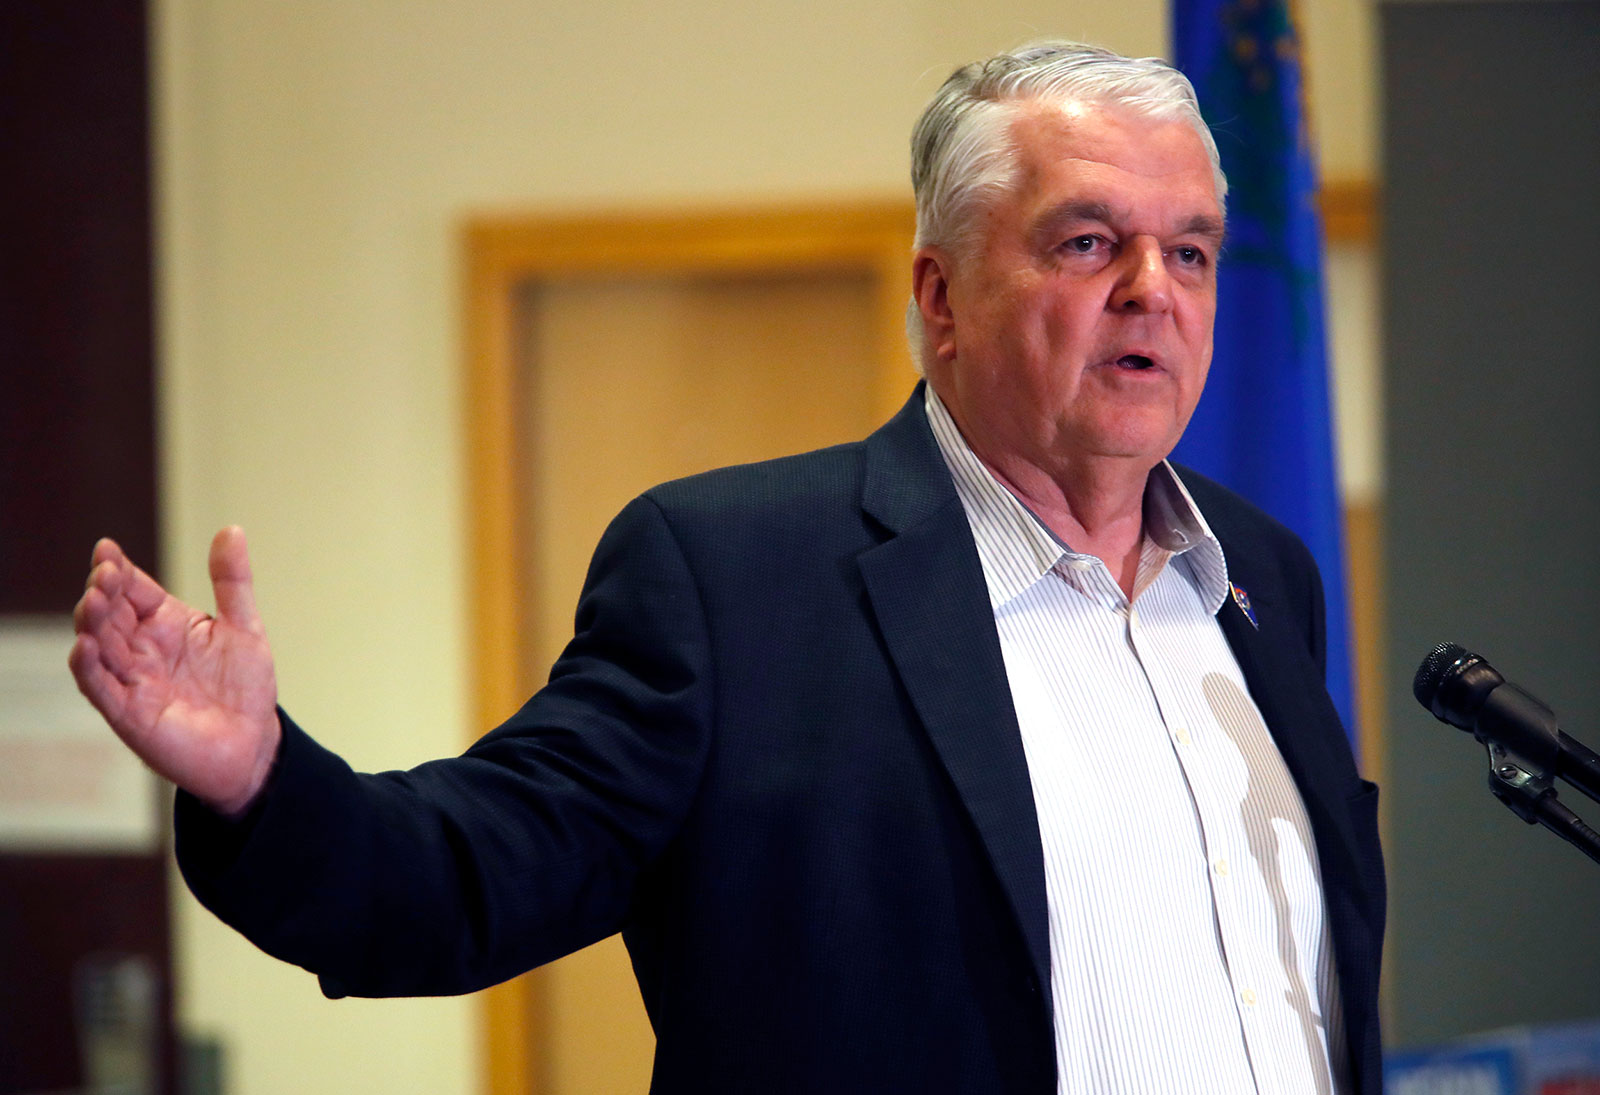 Nevada Gov. Steve Sisolak speaks during a press conference in Las Vegas on Tuesday, March 17.